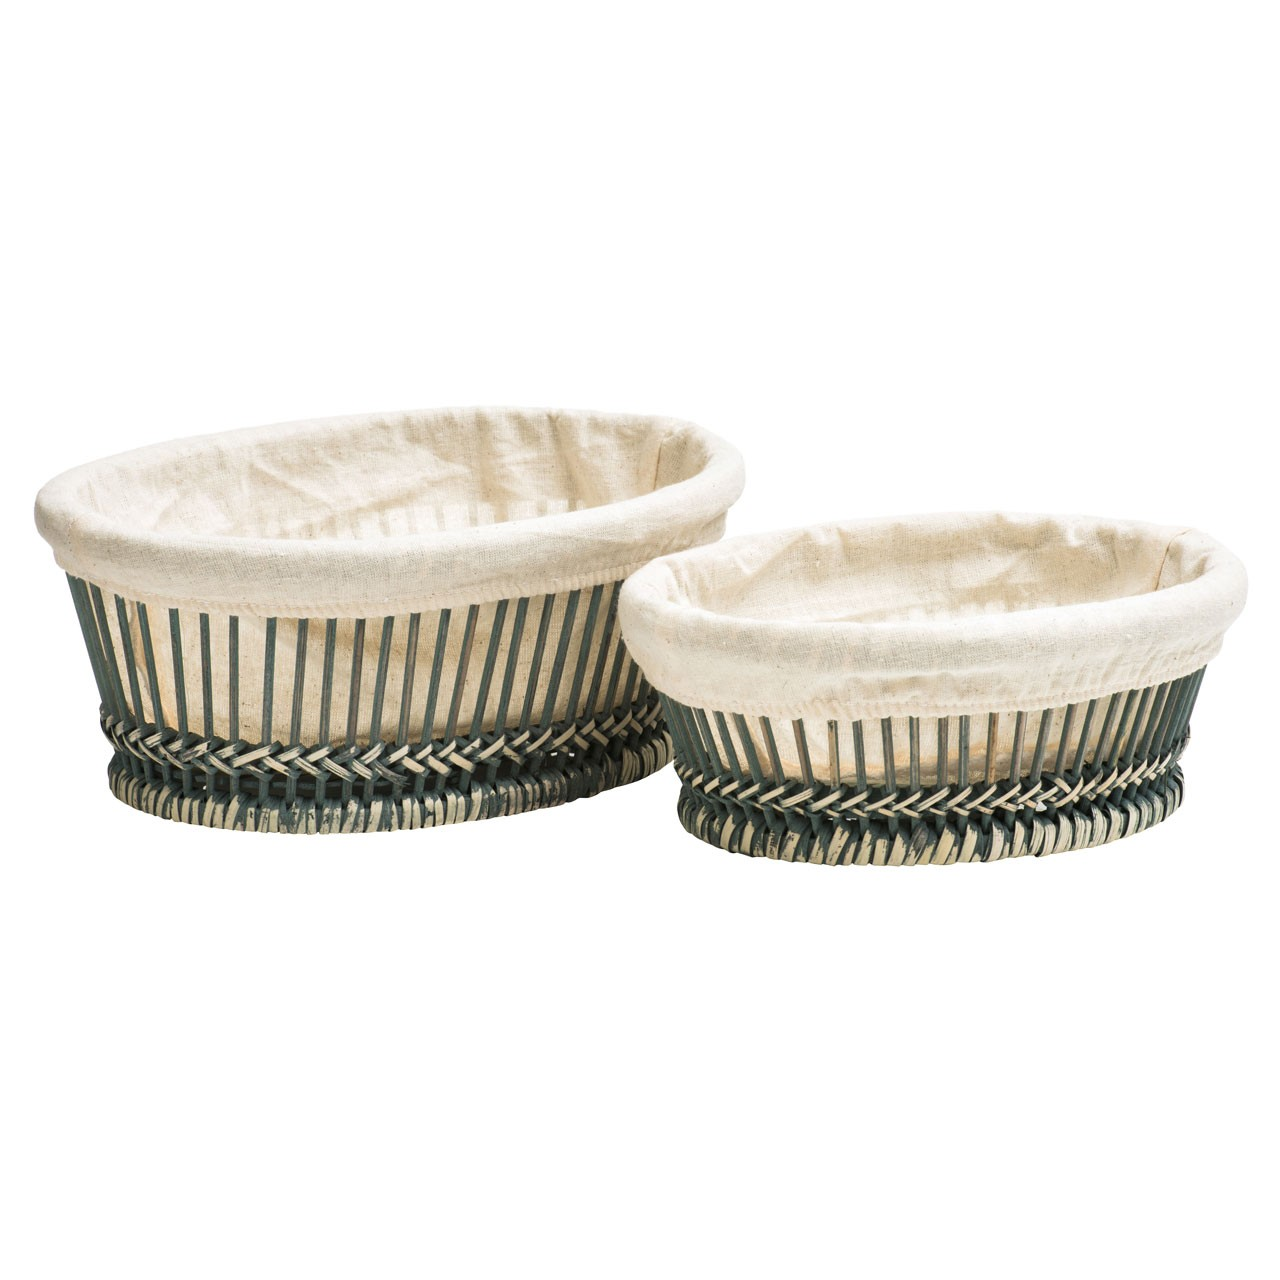 Set Of 2 Bread Baskets Rattan/Bamboo with 100% Cotton Liners